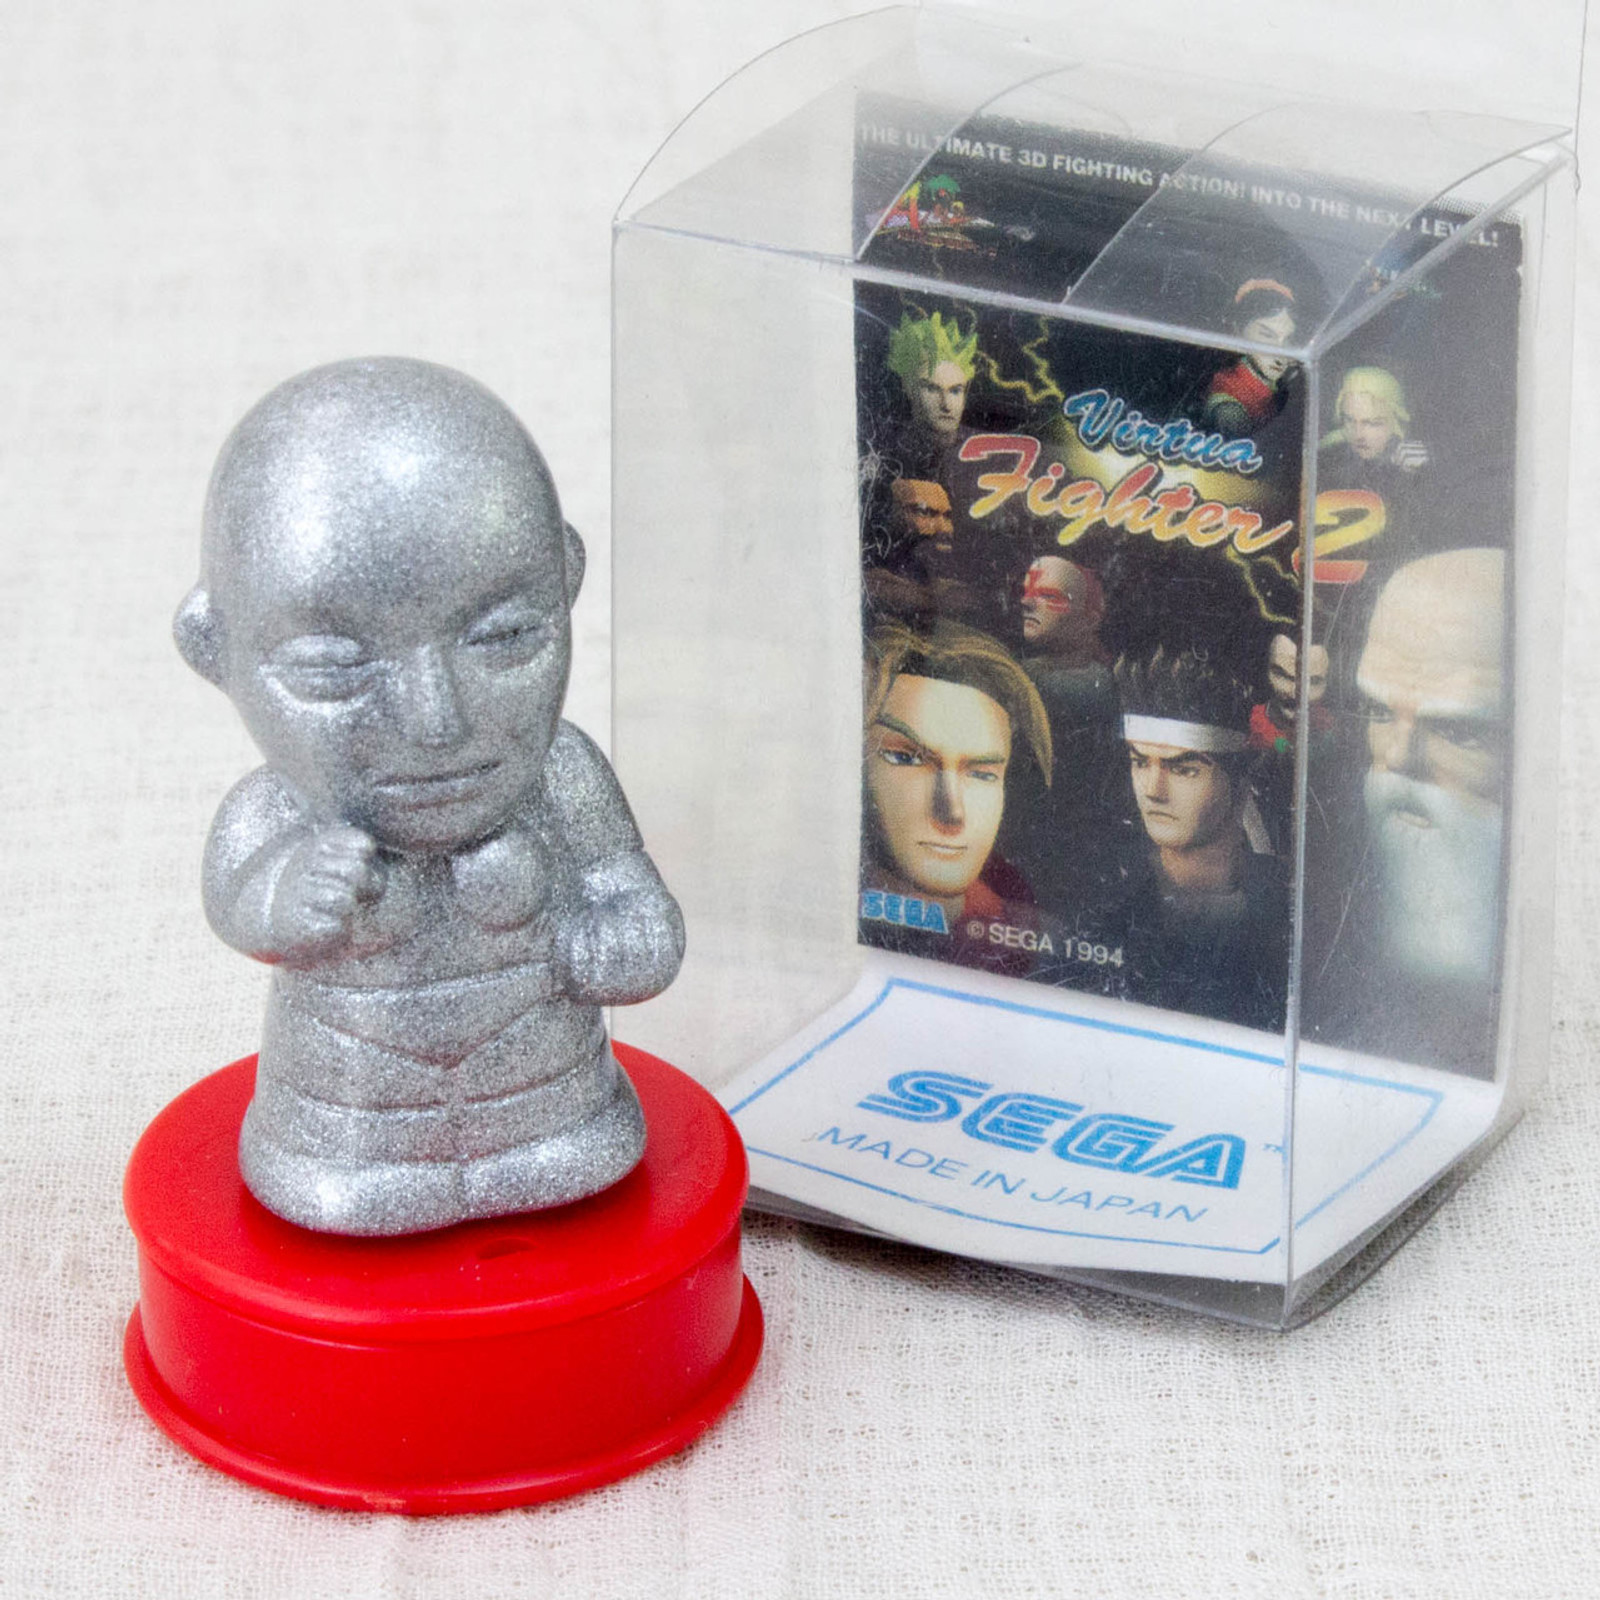 Virtua Fighter 2 Dural Mascot Stamp SEGA 1994 JAPAN GAME FIGURE